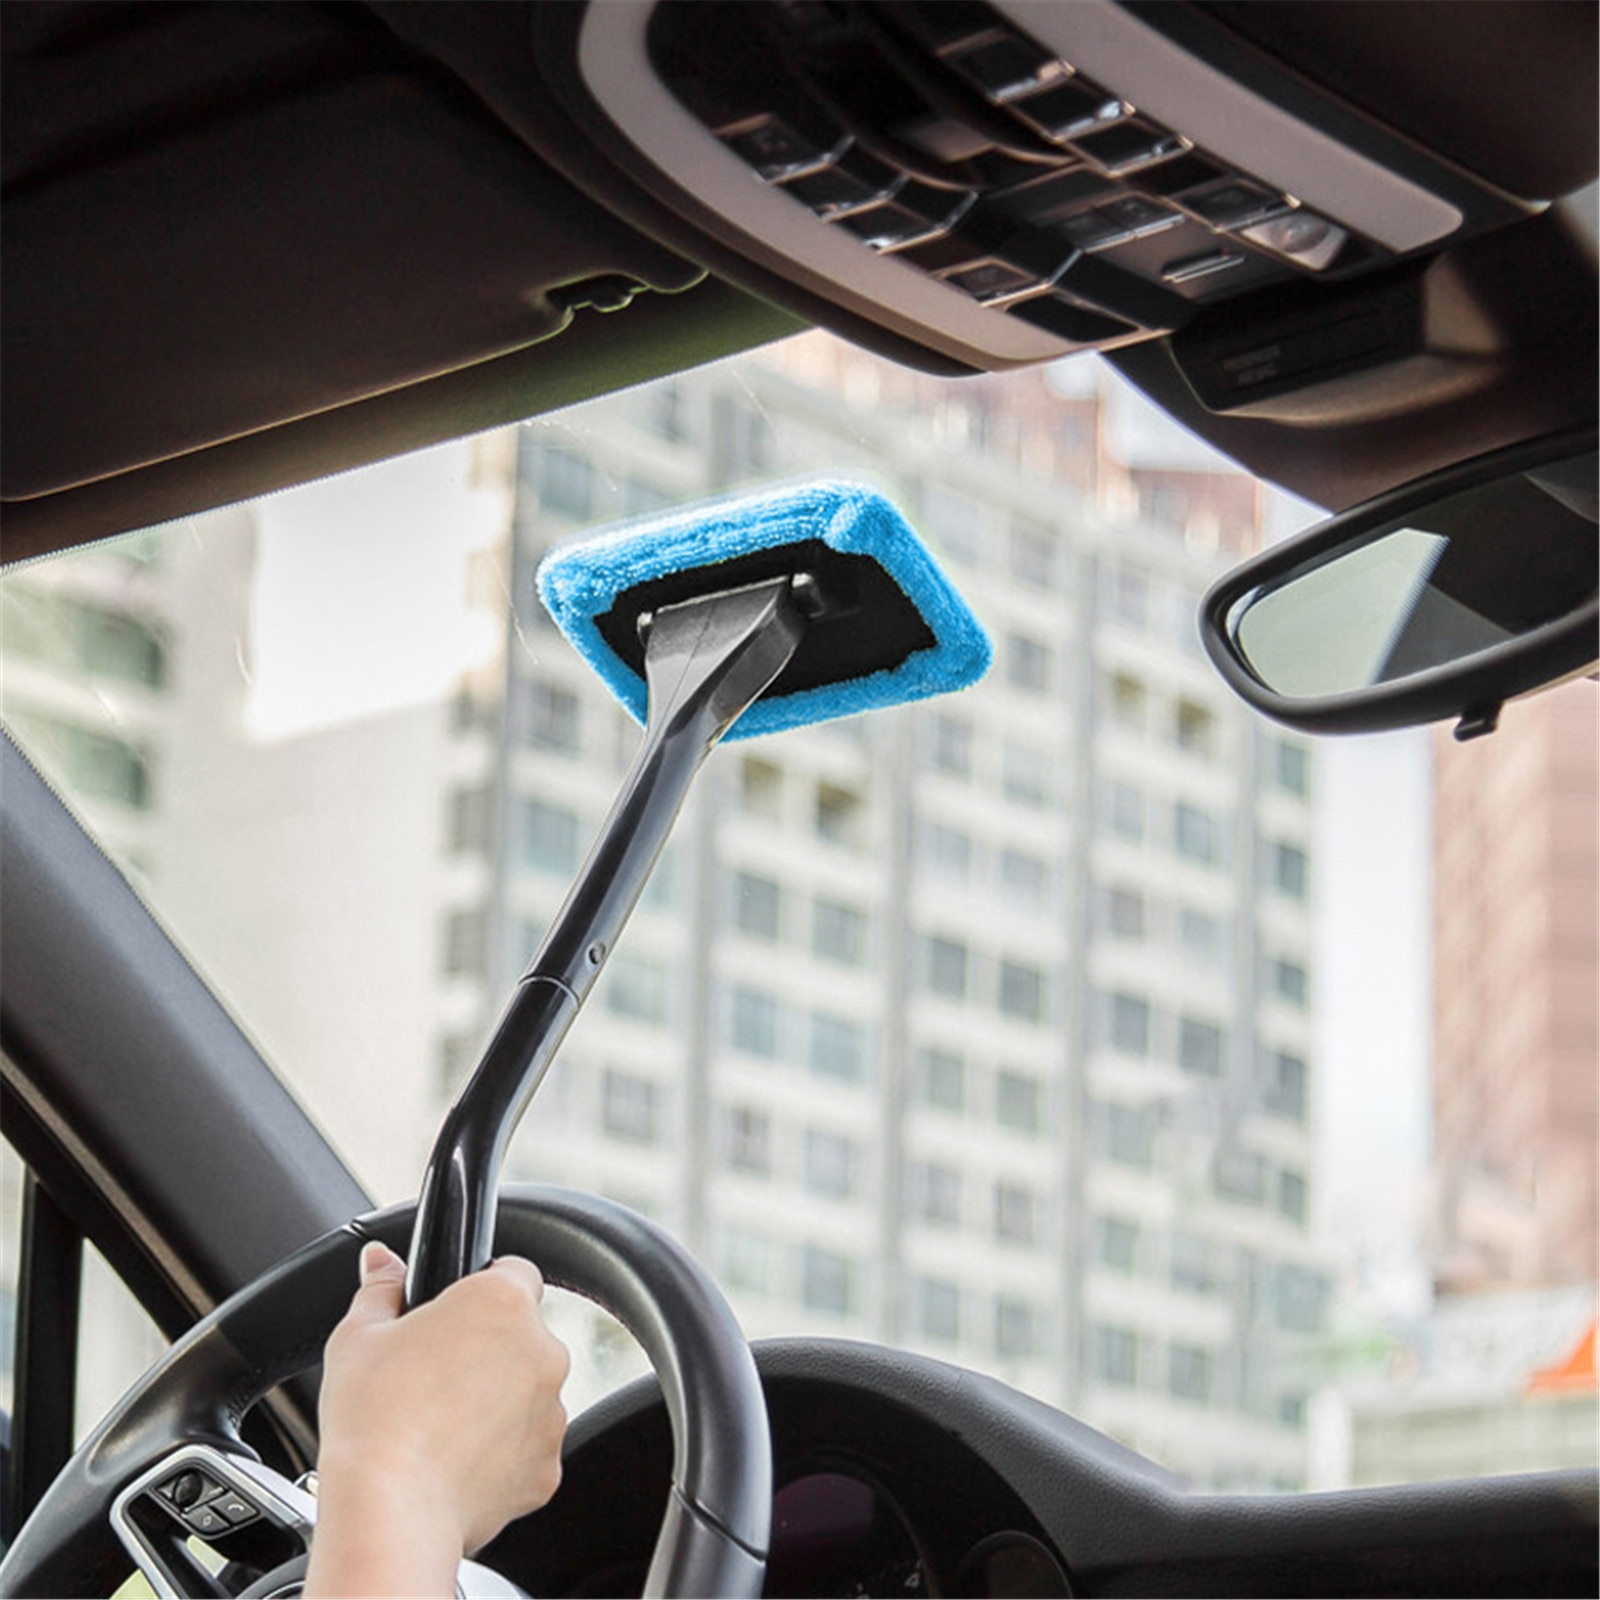 1pc microfiber telescoping car body duster wax dust mop cleaning brush cotton nanofiber car microfiber dust grey brush 13 5x40cm 1PC Detachable Auto Window Brush Microfiber Car Window Dust Fog Moisture Cleaner Wash Brush Windshield Towel Car Cleaning Tool